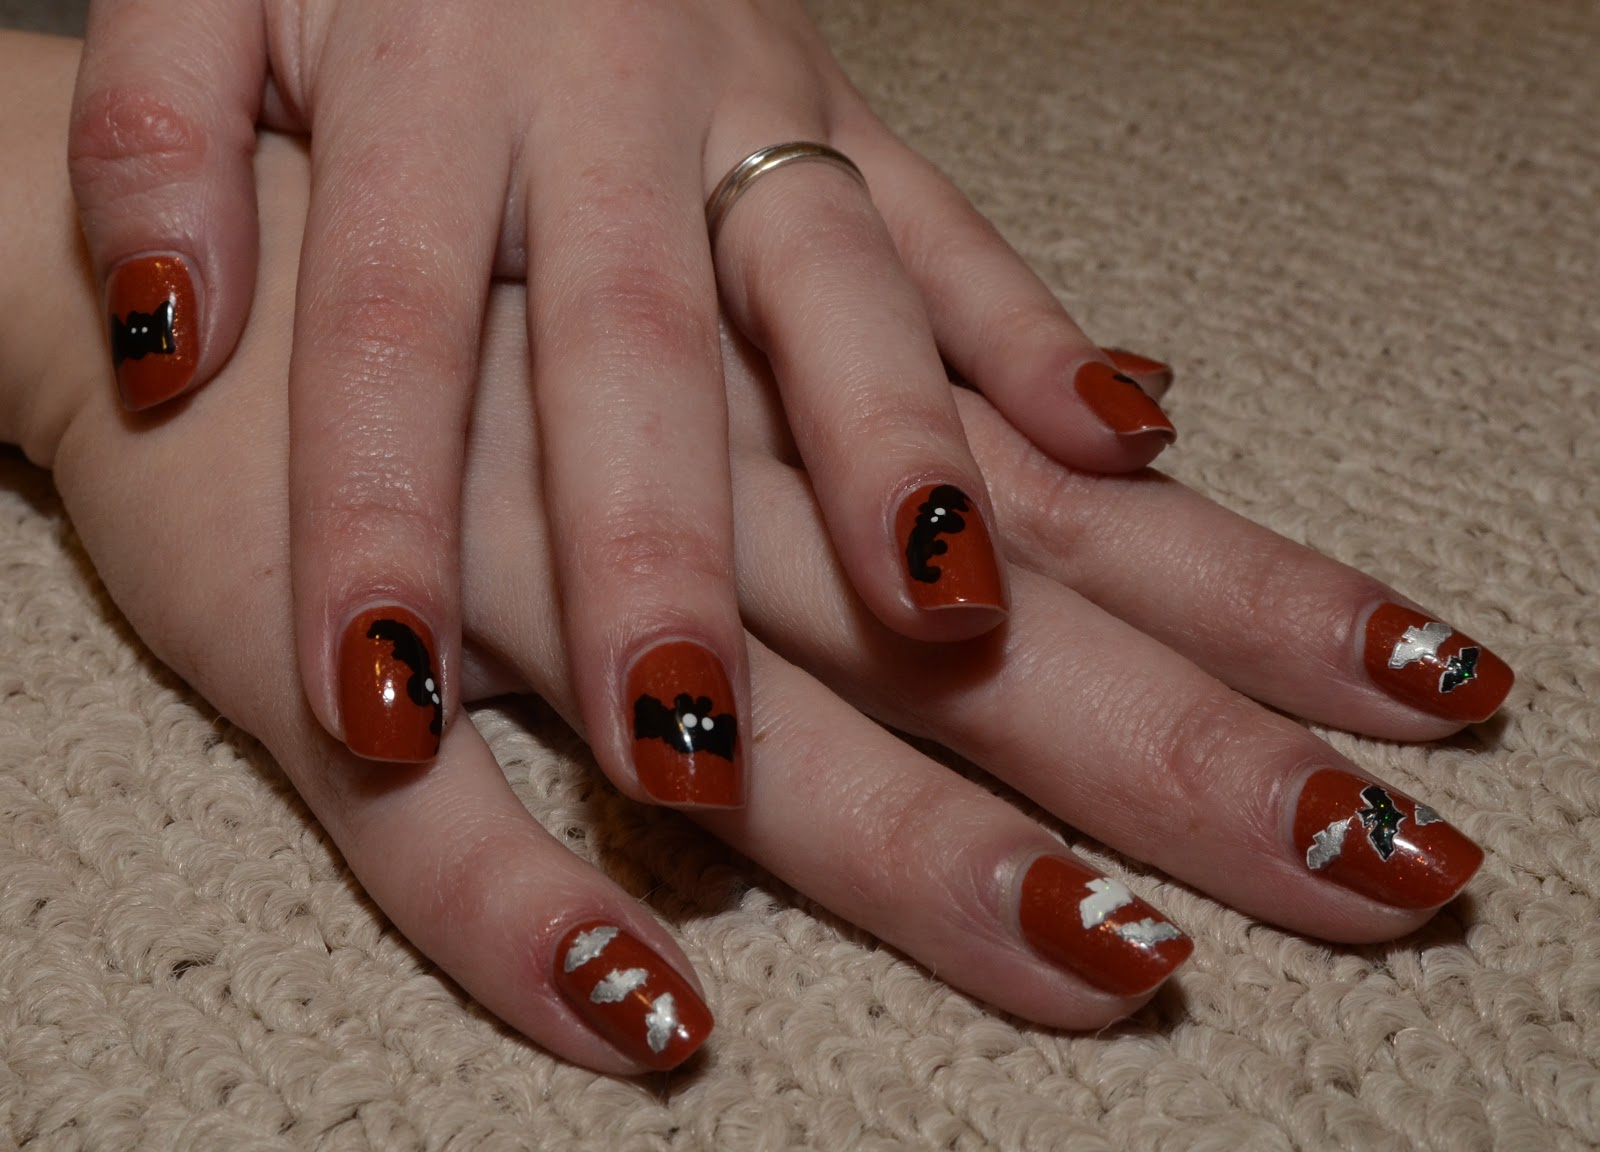 """pris' nails: """"this is halloween"""" - bats"""